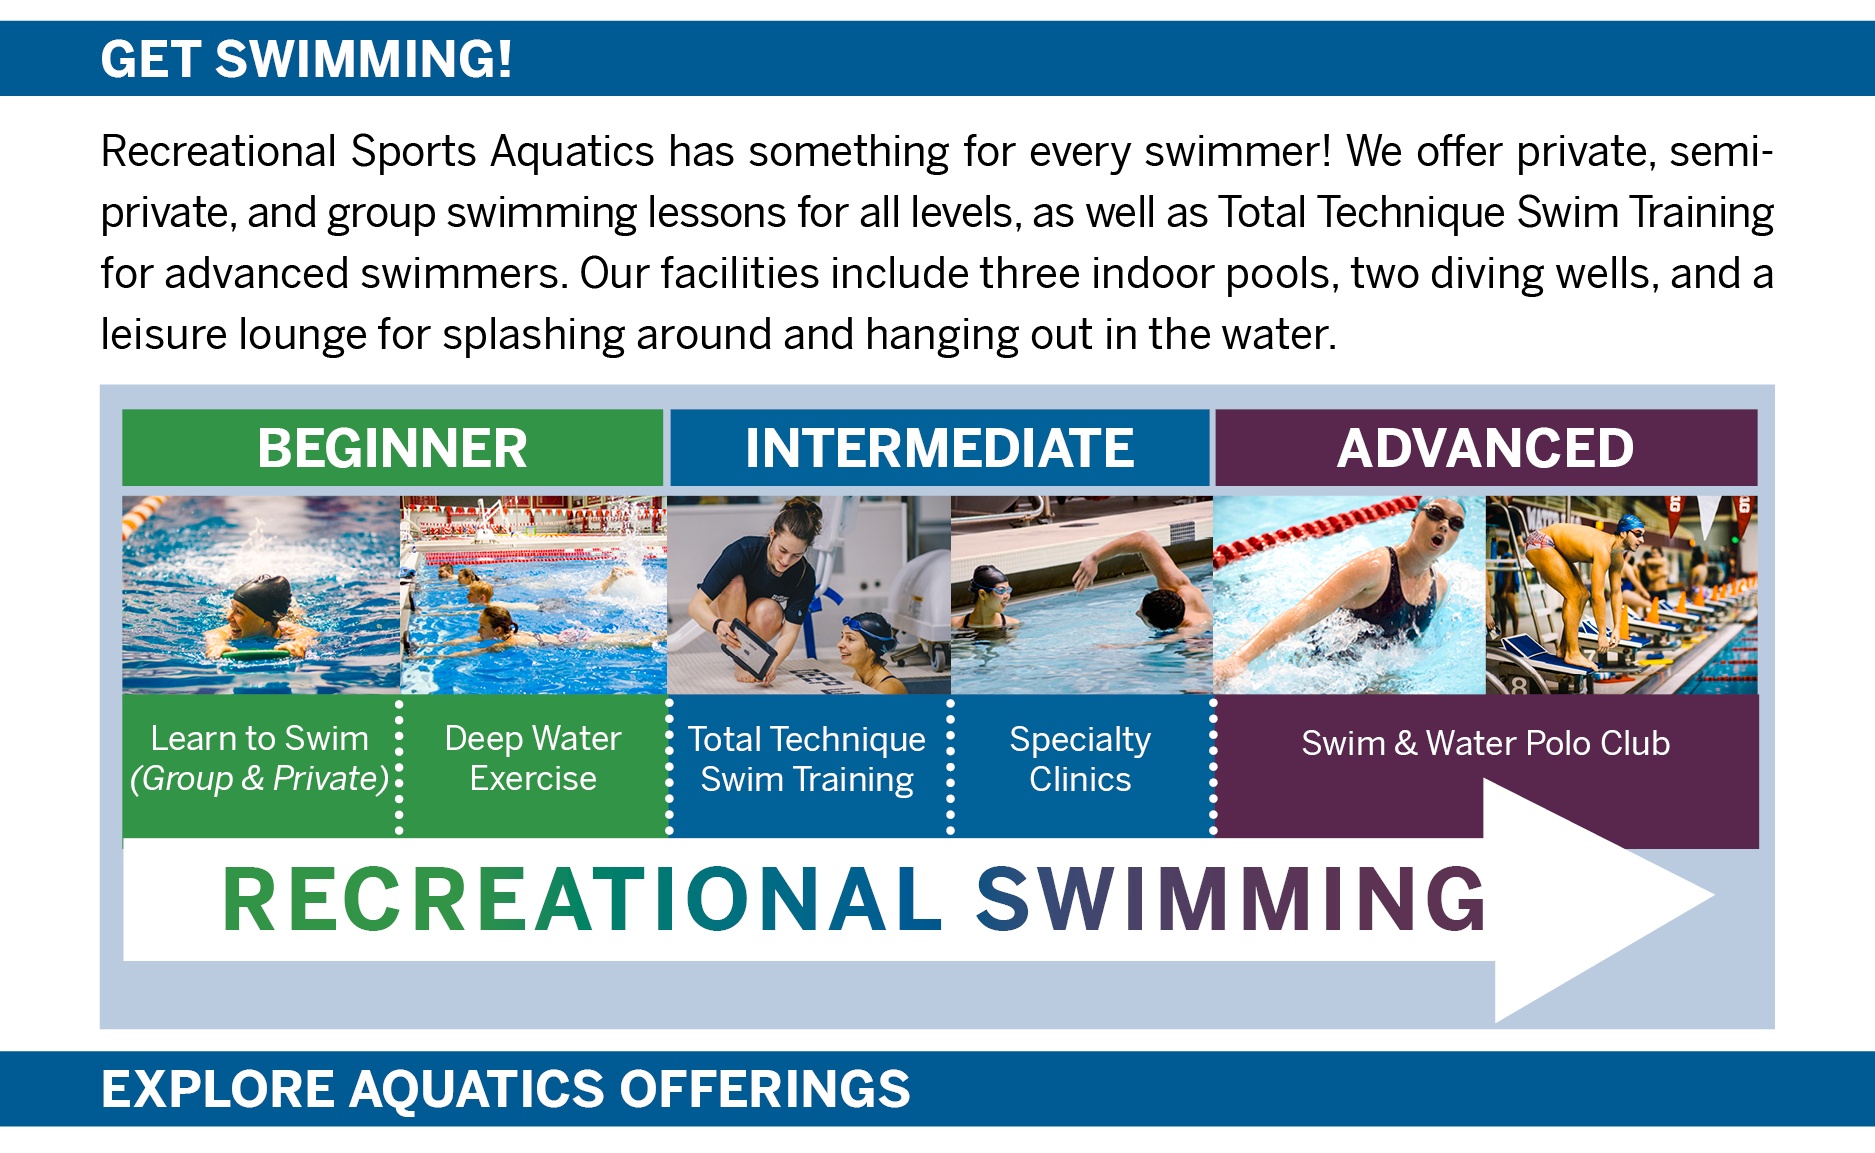 GET SWIMMING! Recreational Sports Aquatics has something for every swimmer! We offer private, semi-private, and group swimming lessons for all levels, as well as Total Technique Swim Training and swimFIT for advanced swimmers. Our facilities include three indoor pools, two diving wells, and a leisure lounge for splashing around and hanging out in the water.  BEGINNER Group, Private & Semi-Private Swim Sessions Deep Water Exercise  INTERMEDIATE Total Technique Swim Training Specialty Clinics  ADVANCED swimFIT Swim & Water Polo Club  ALL LEVELS  RECREATIONAL SWIMMING  EXPLORE AQUATICS OFFERINGS